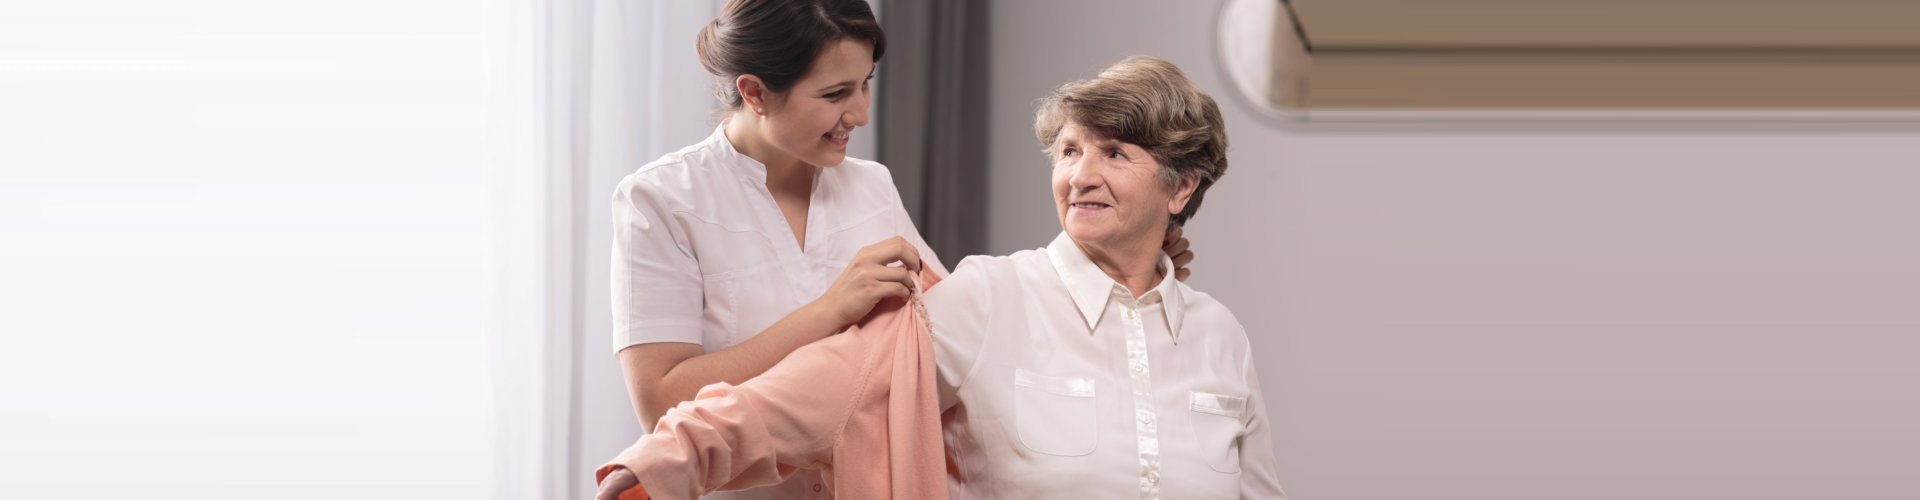 caregiver helping elder woman in wearing a shirt